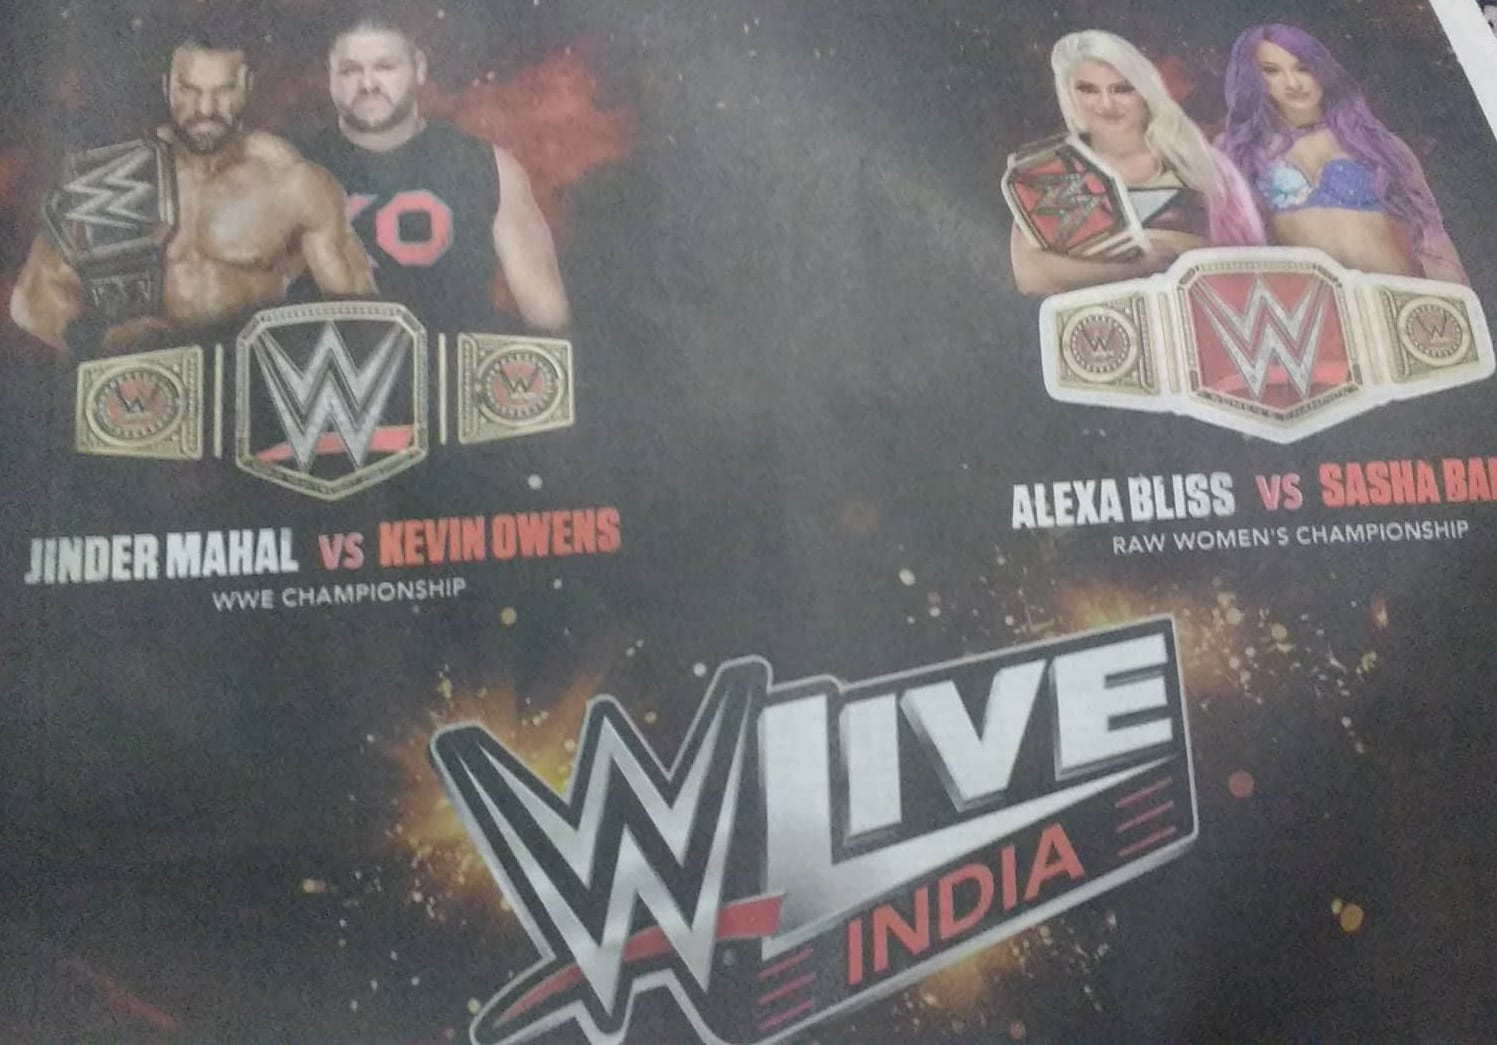 Jinder Mahal still being advertised to defend the WWE Championship against Kevin Owens in India after losing the WWE Title to AJ Styles on SmackDown Live